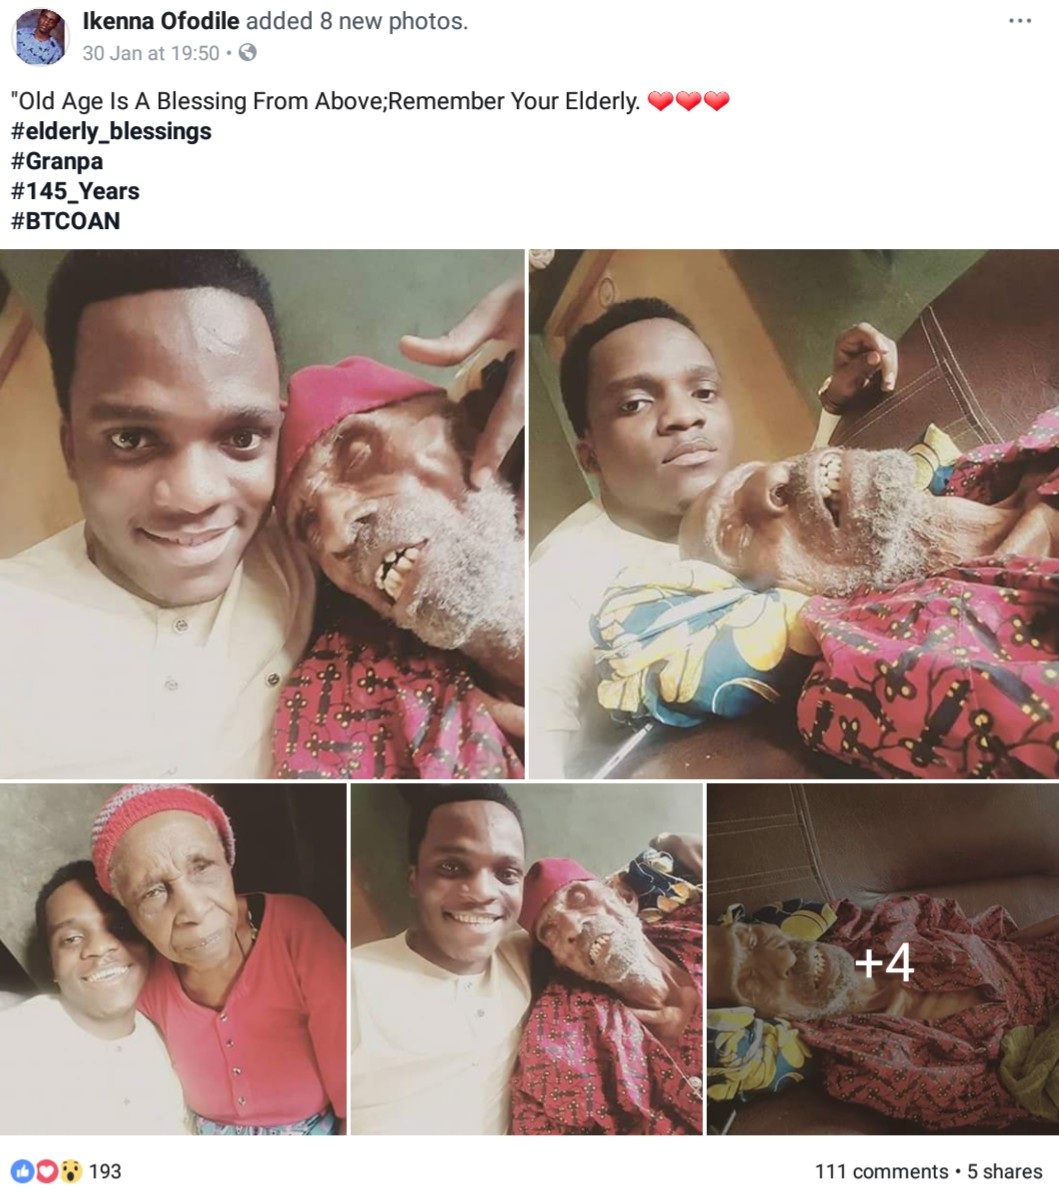 Nigerian Man Shows Off His 145-Year-Old Grandpa